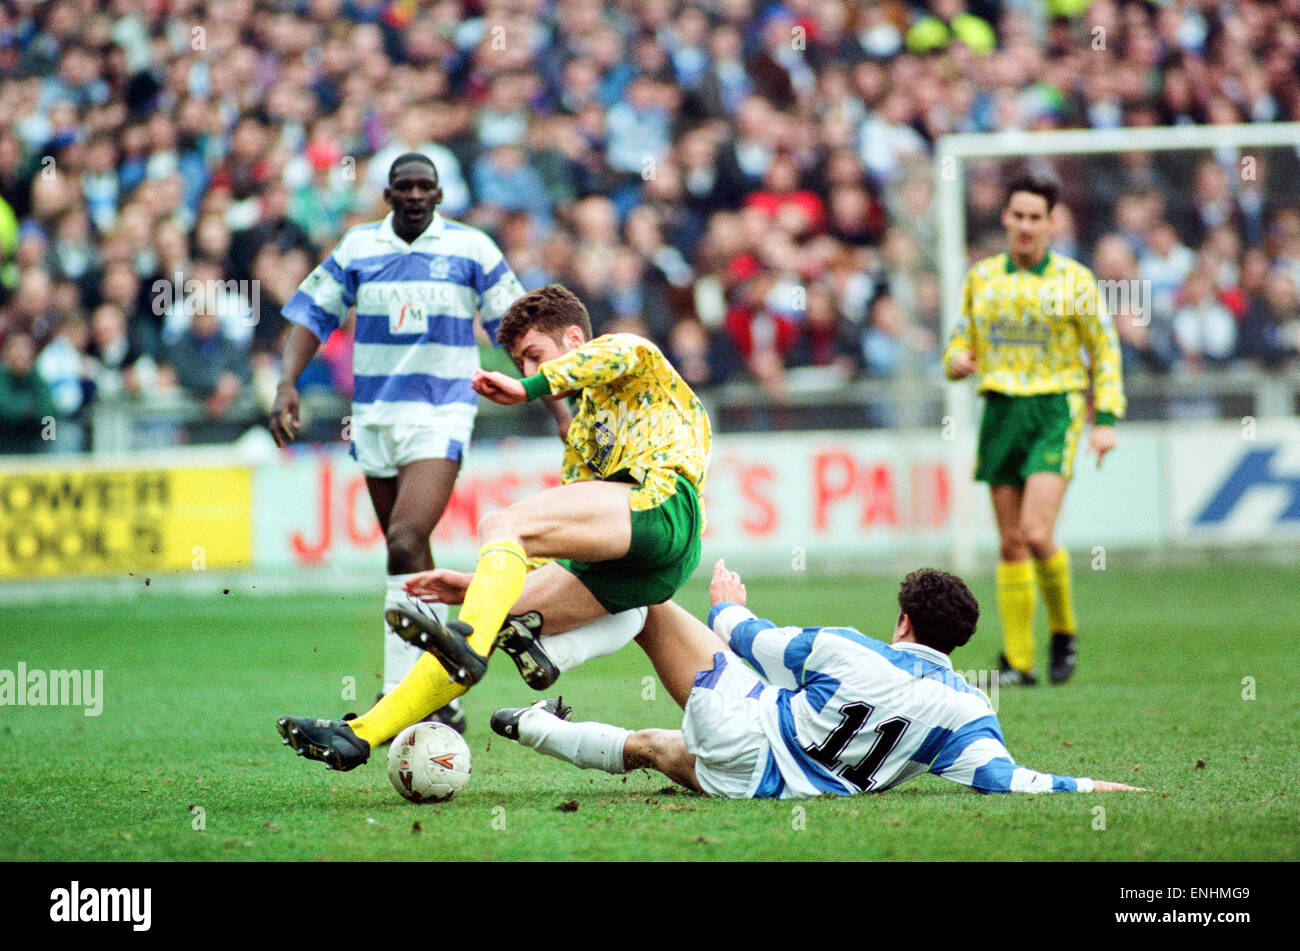 QPR v Norwich, league match at Loftus Road, Saturday 6th March 1993. Norwich's Chris Sutton tackles for the - Stock Image